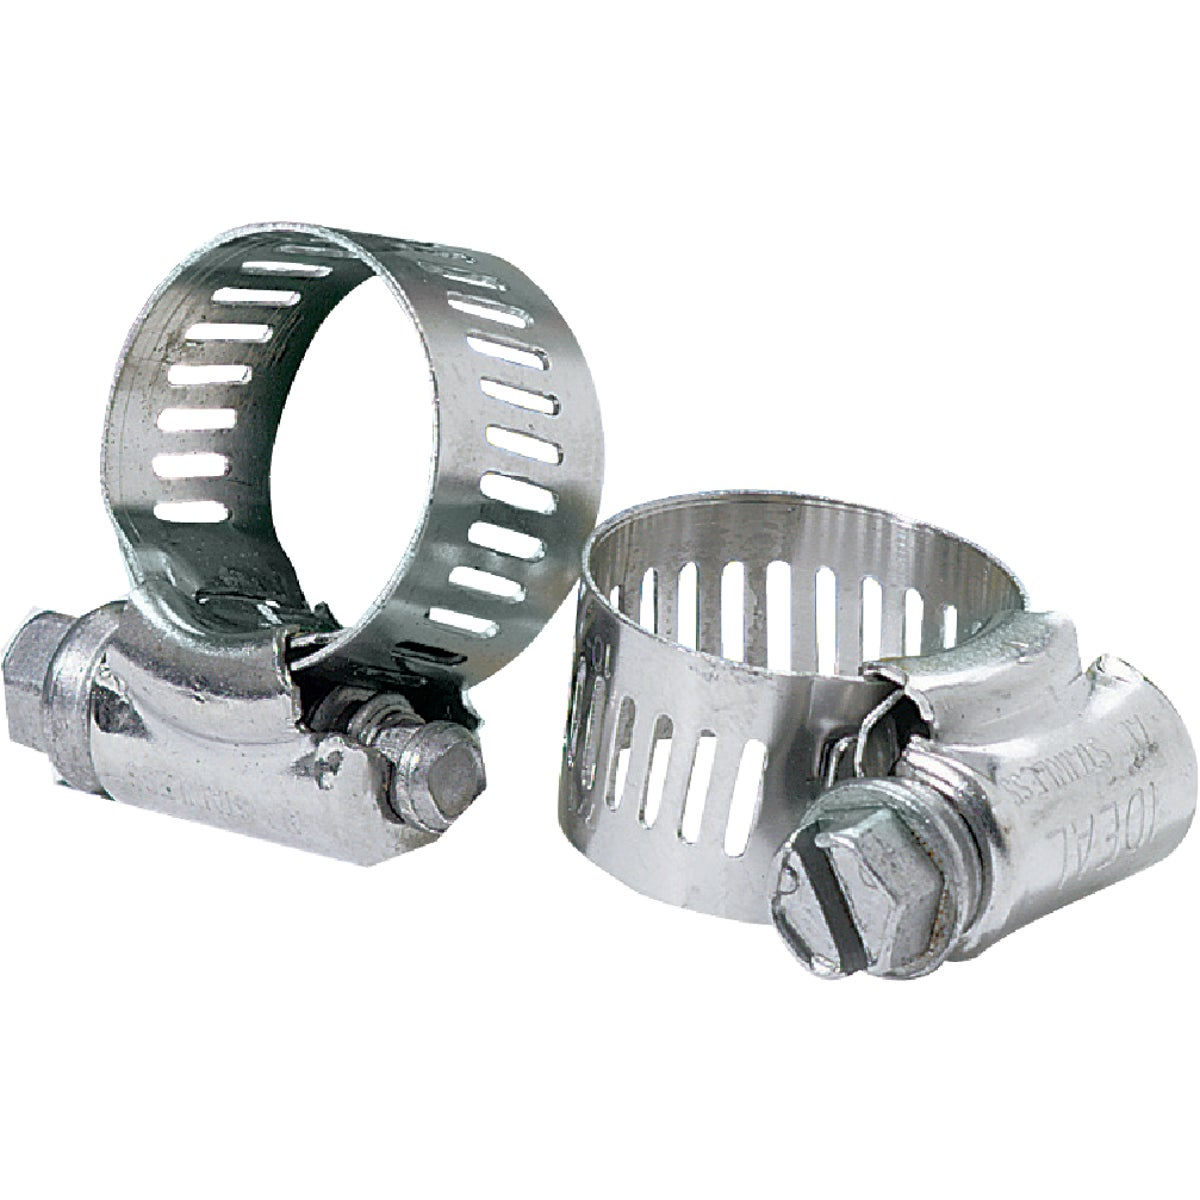 "2-1/2"" TO 4-1/2"" CLAMP - 6764153 by Ideal Corp"